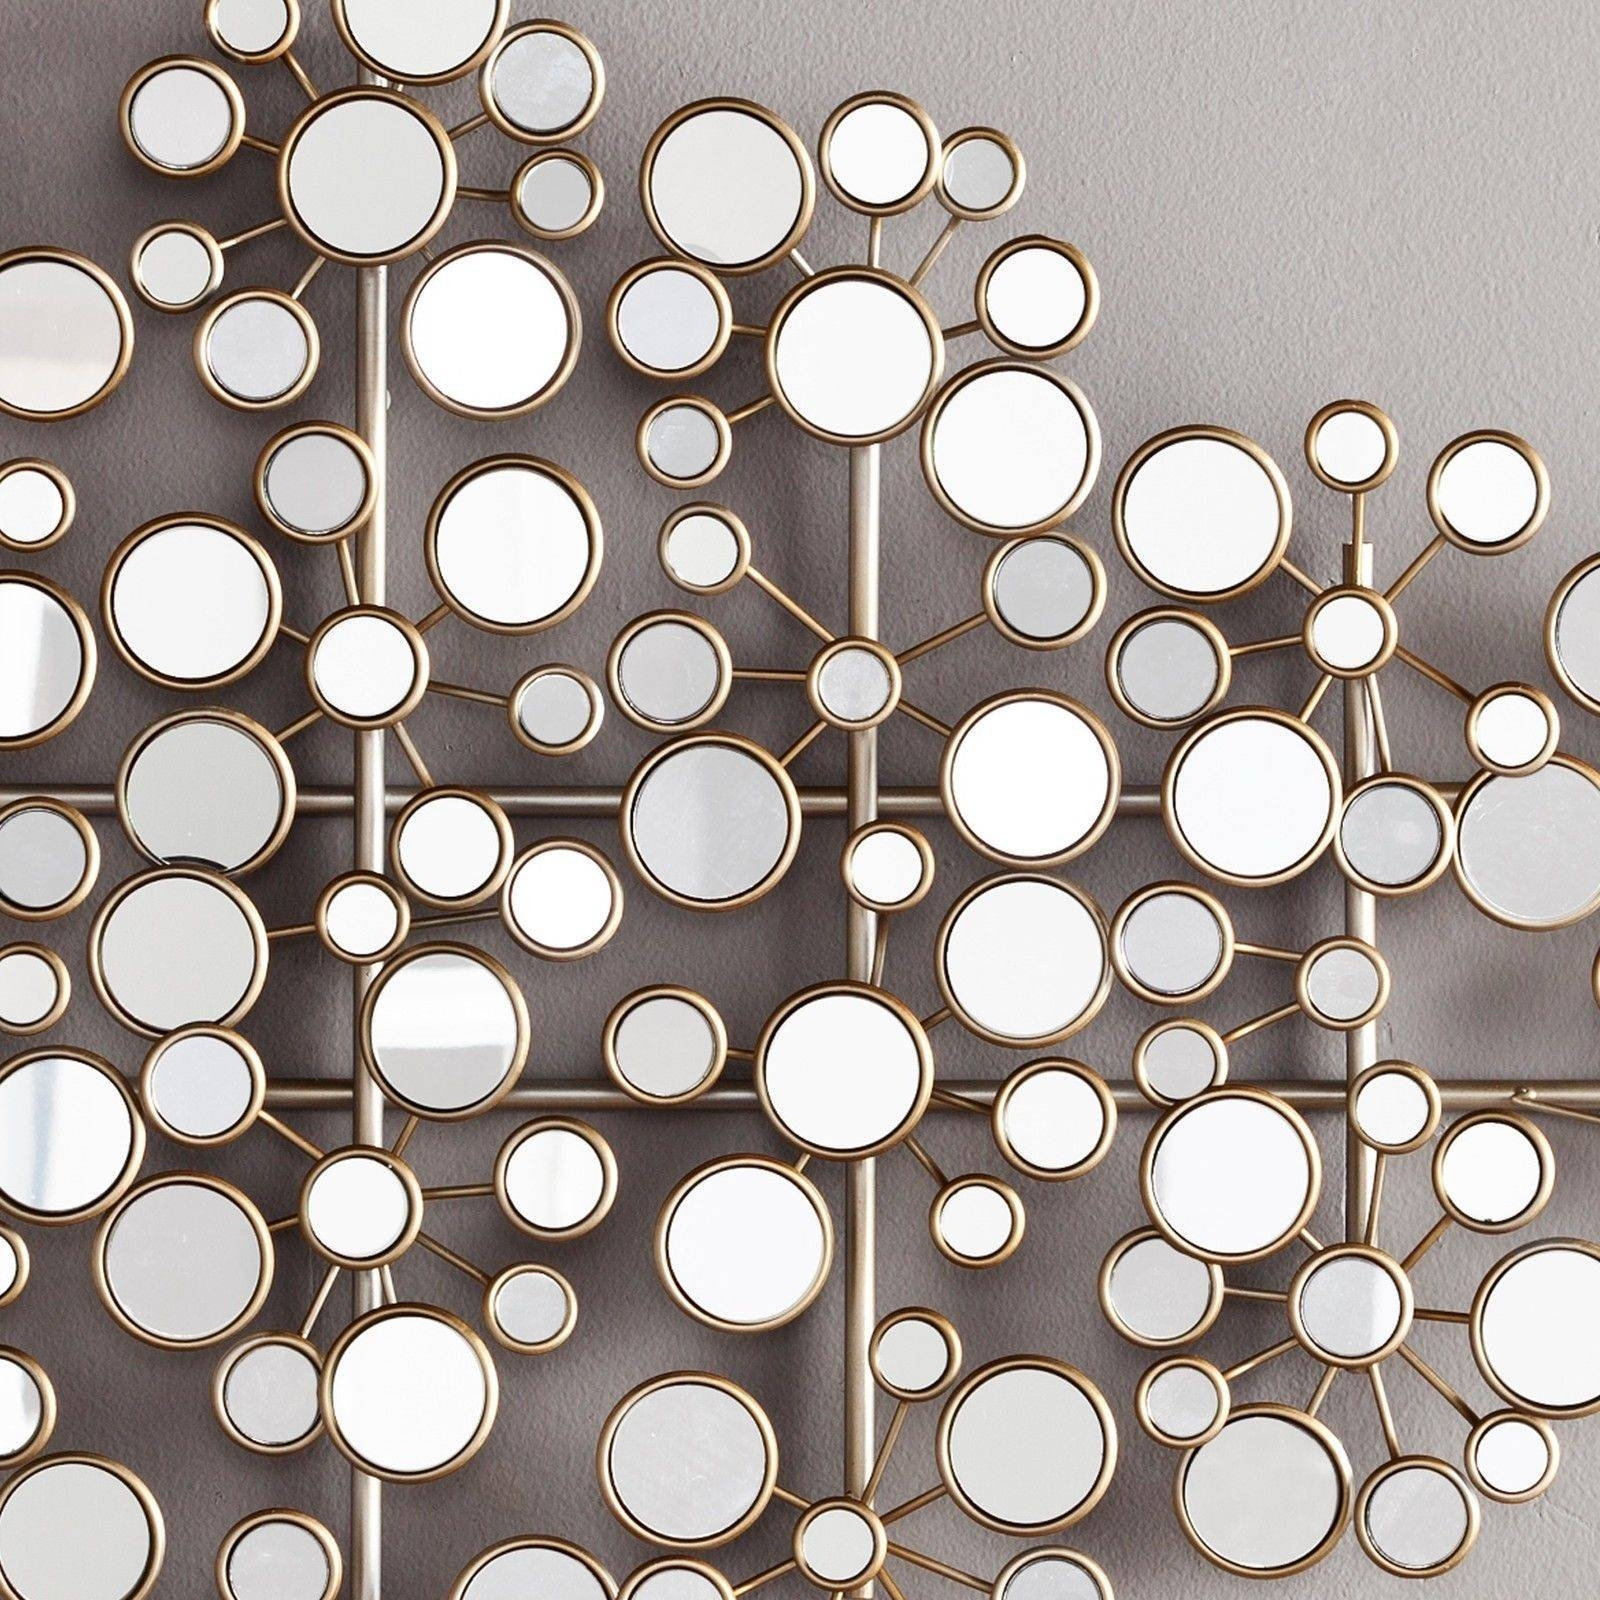 Superb Wall Decor Metal Wall Art Rope Steel Circles Metal Wall Art In Current Mirror Circles Wall Art (View 12 of 20)